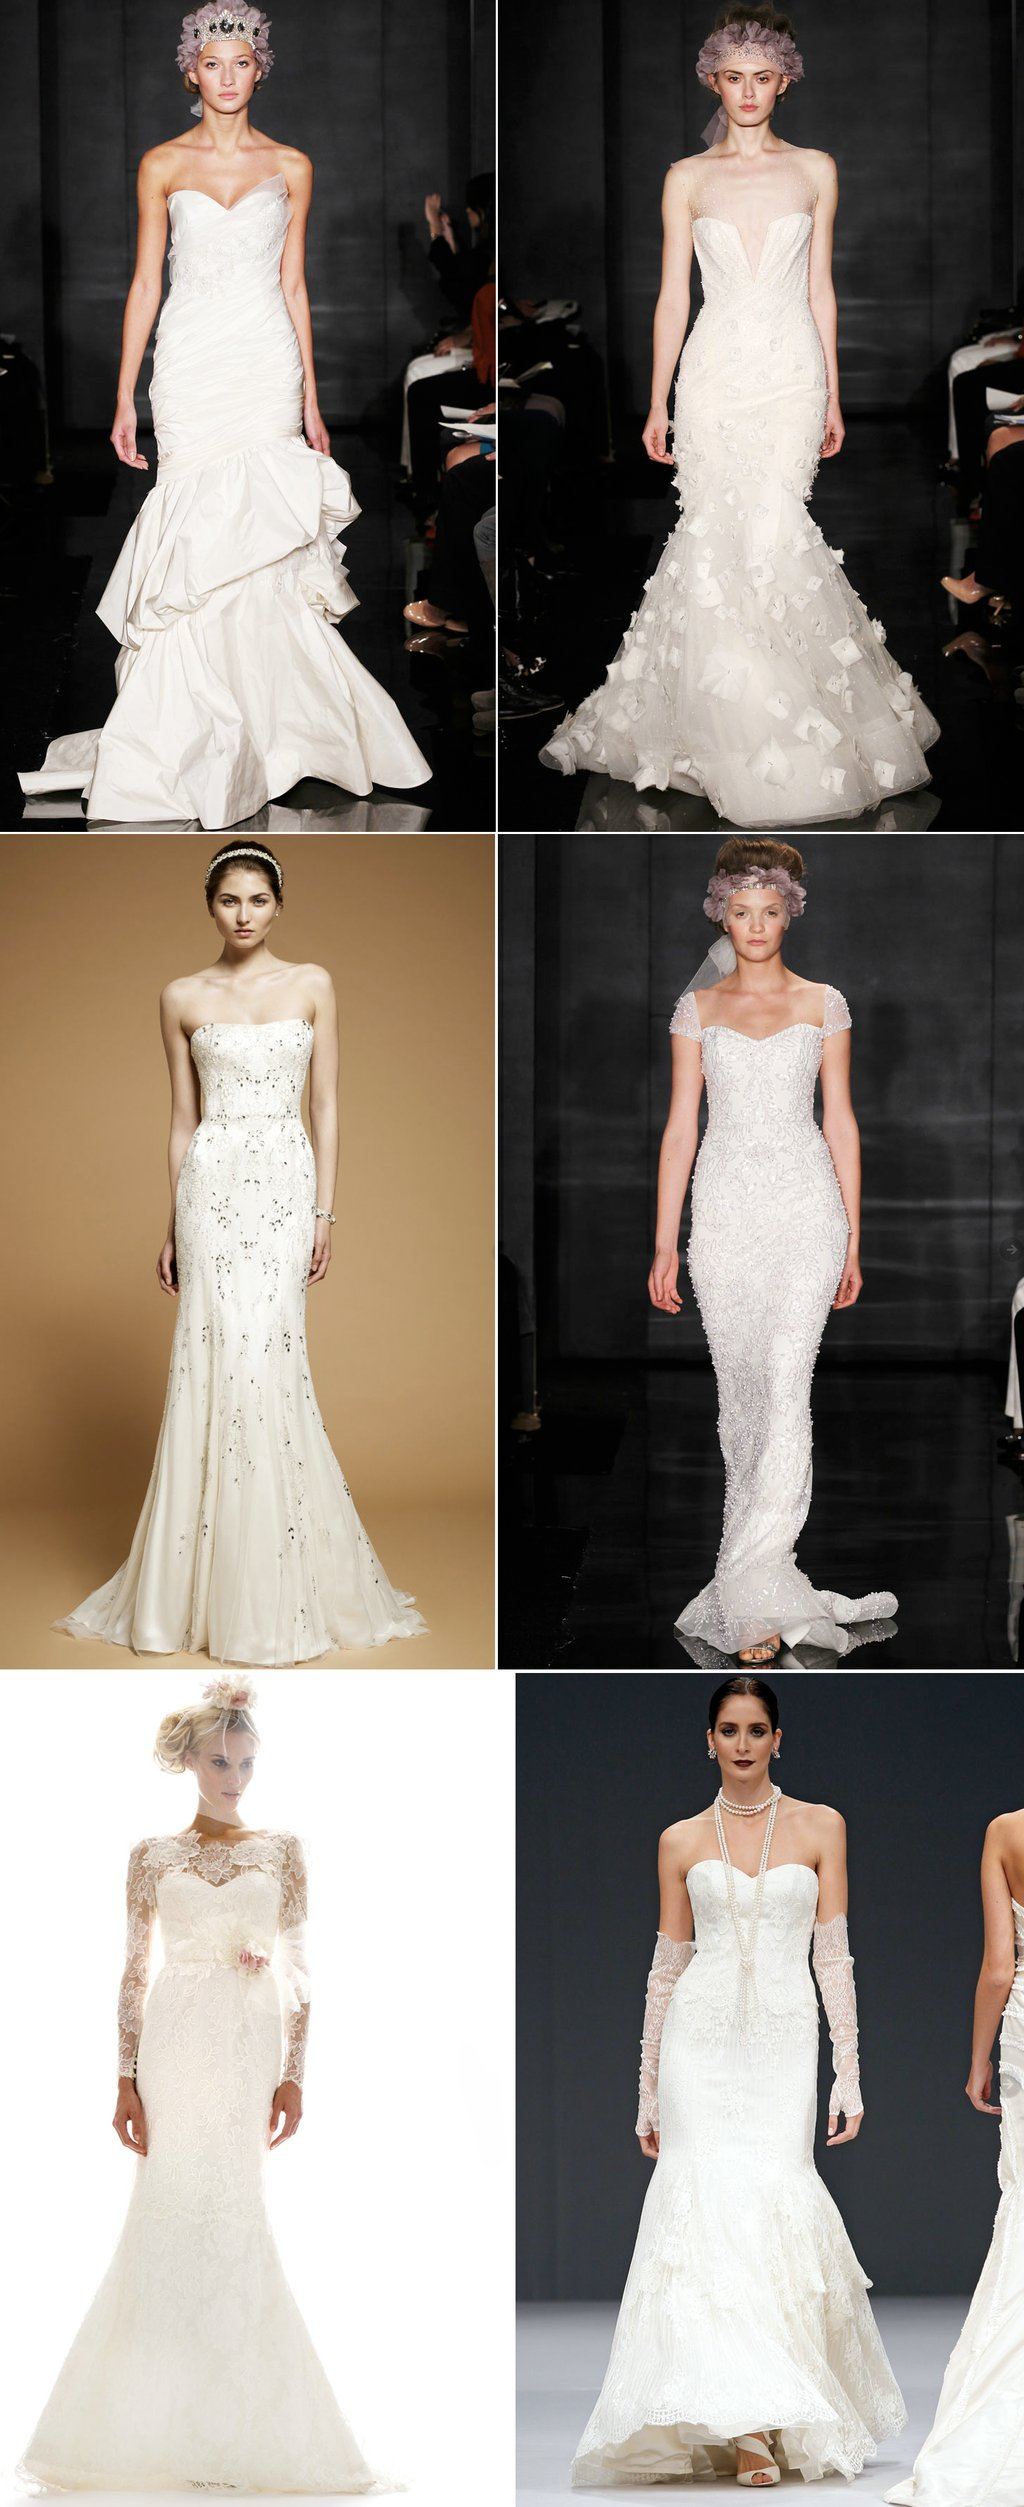 2012 wedding dresses mermaid style lace reem acra anne barge